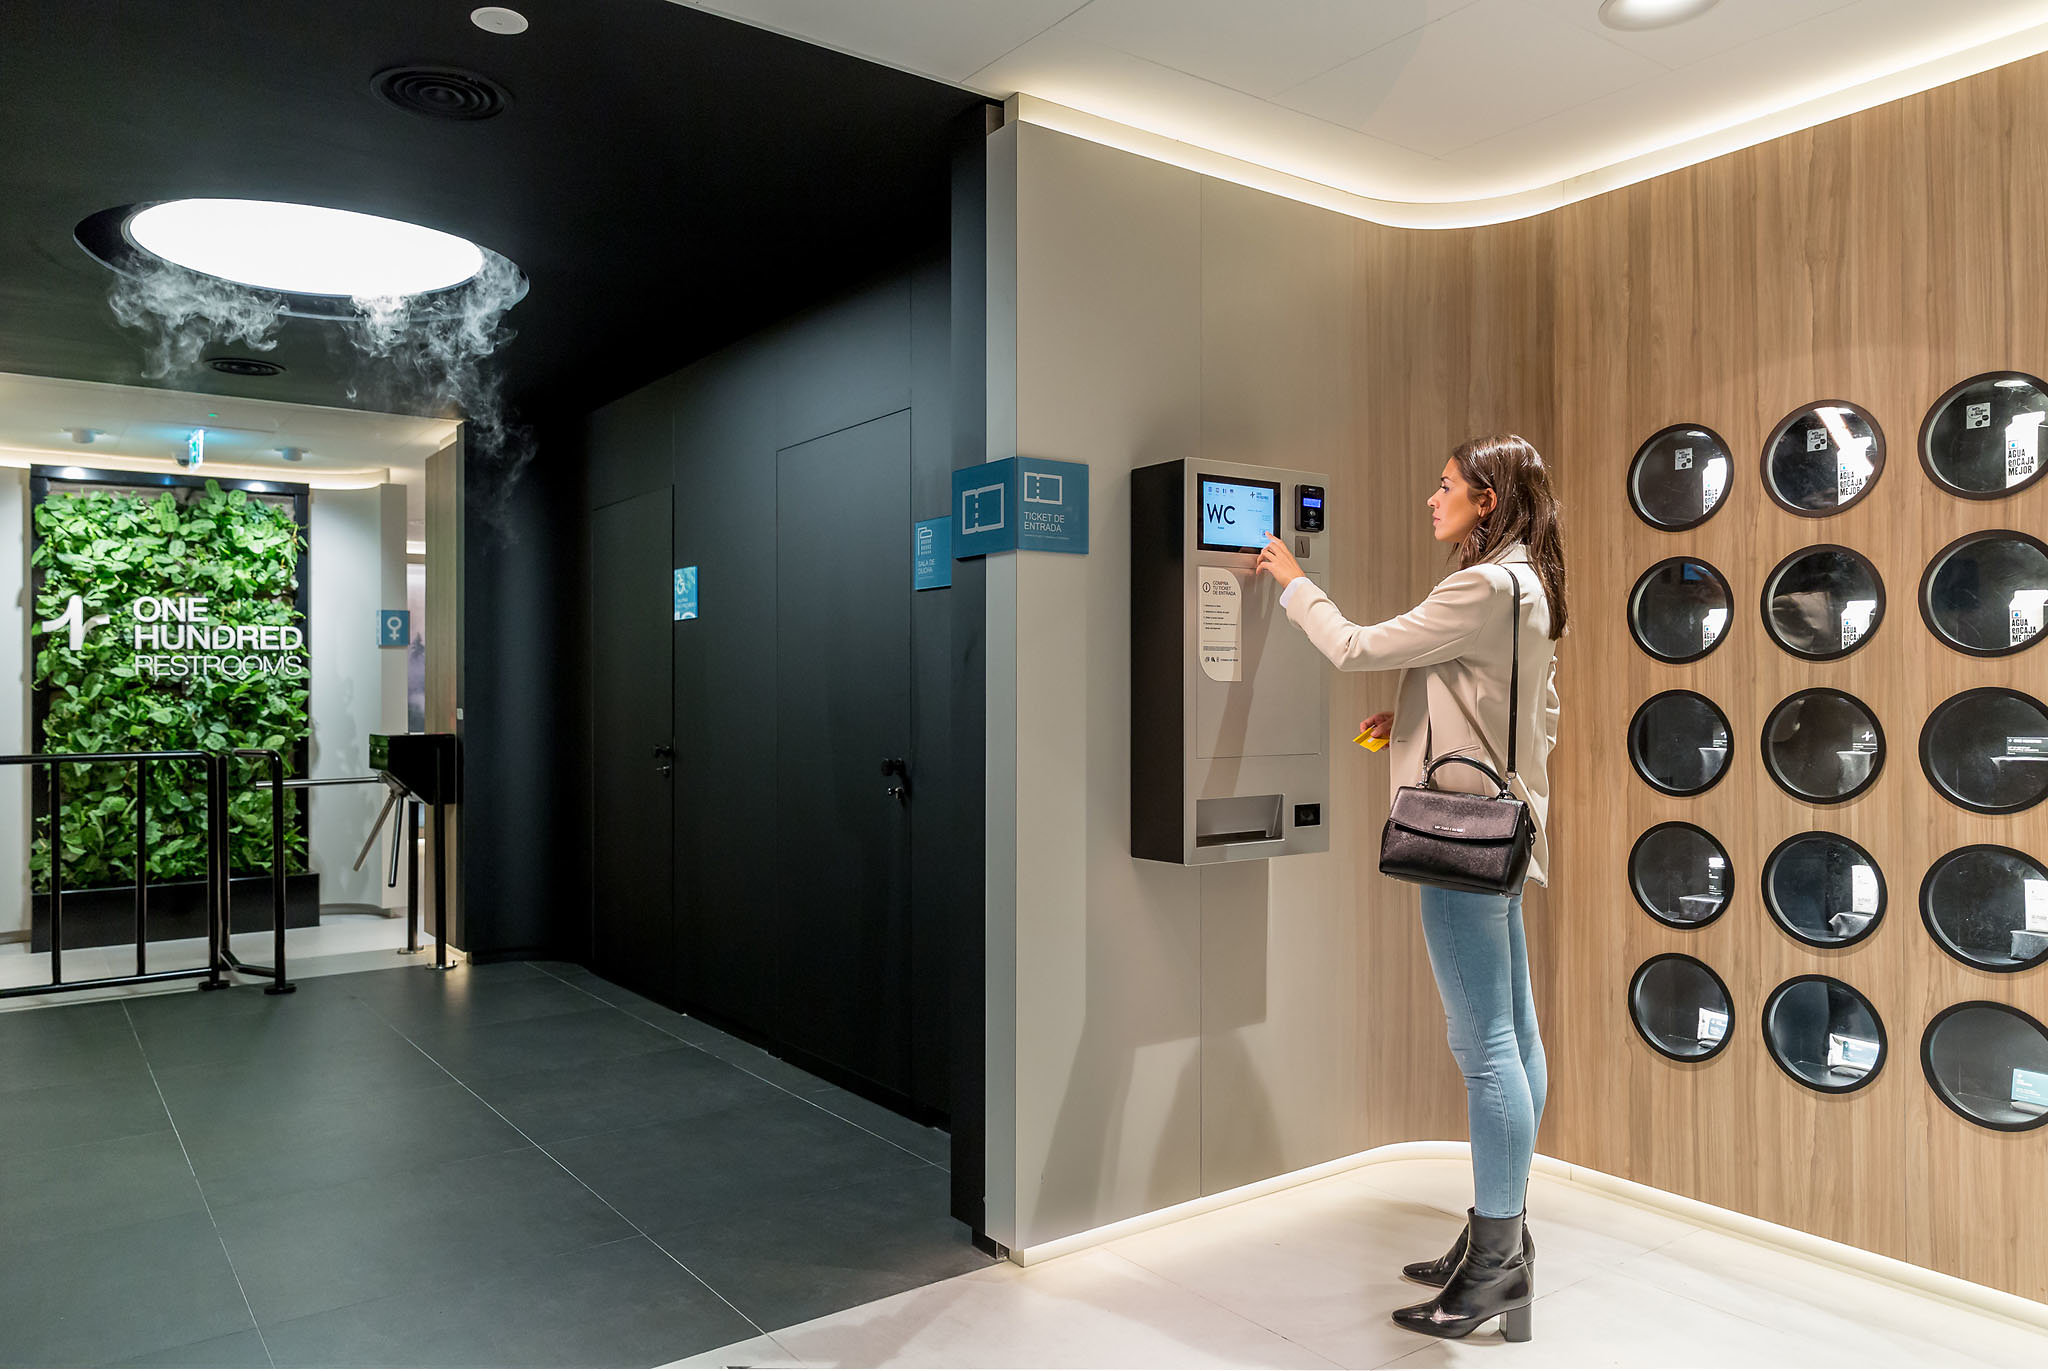 One Hundred restrooms: the new standard in public toilets